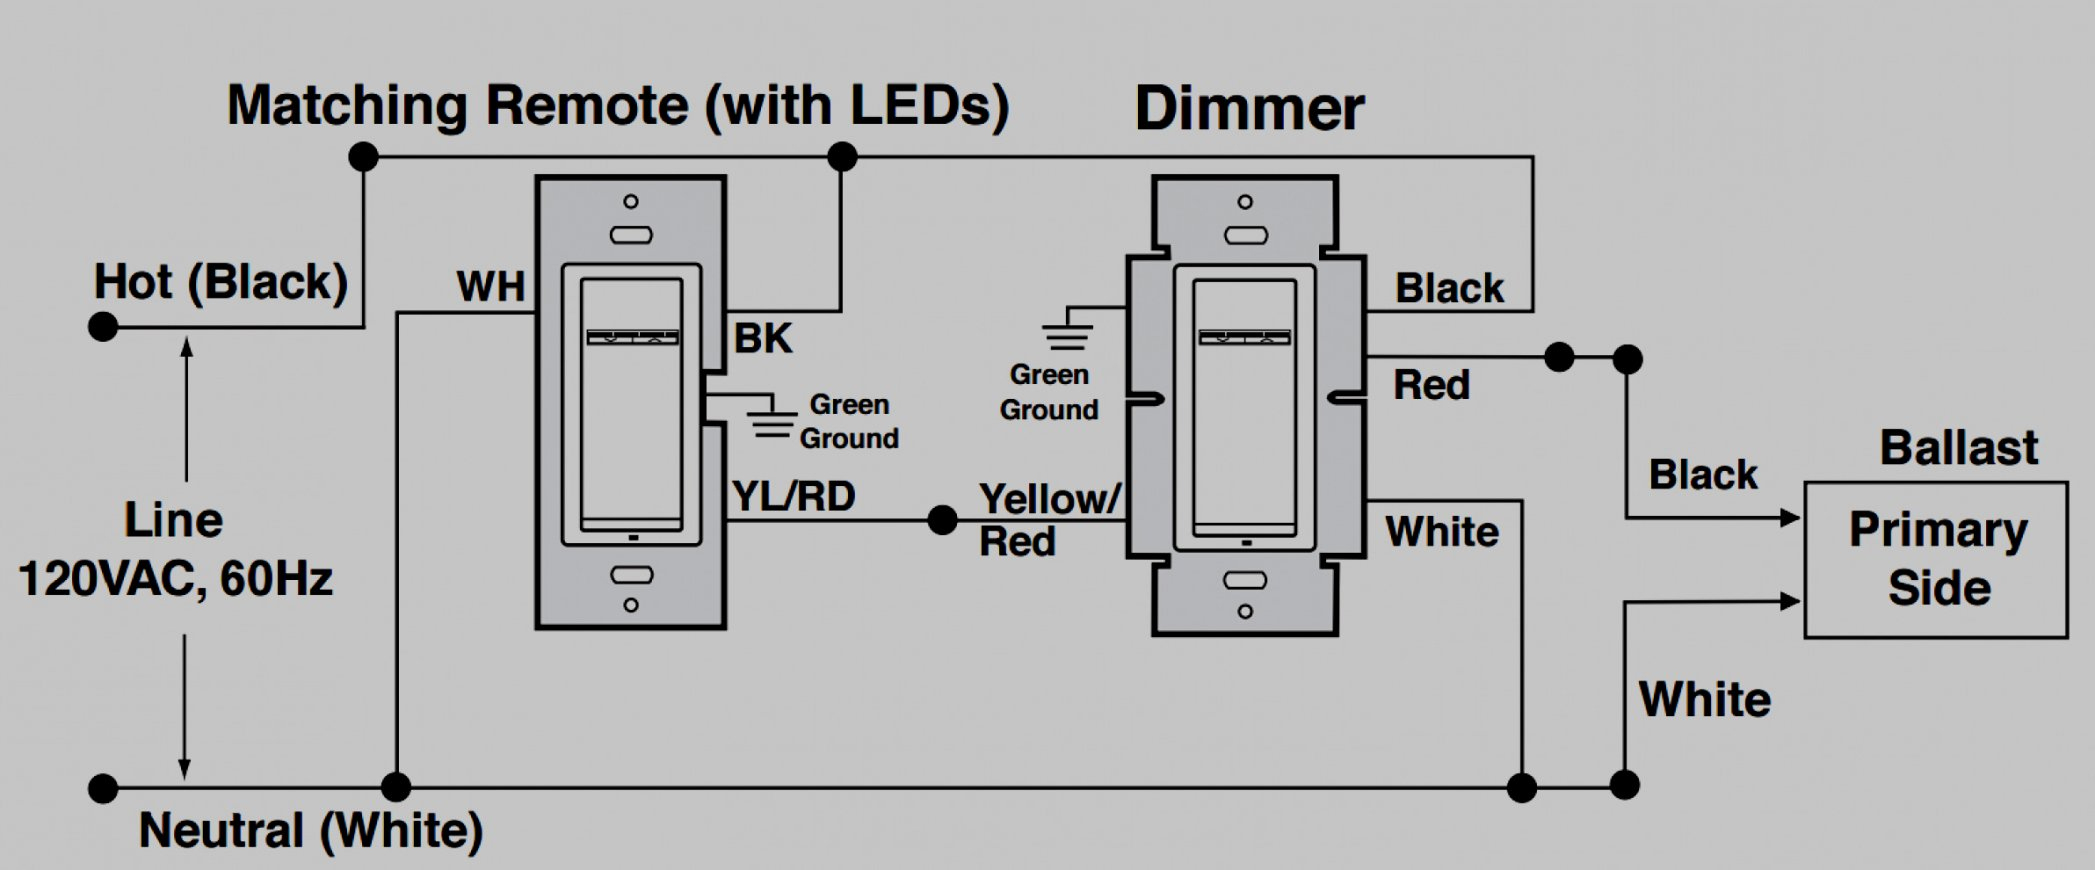 S2L Lutron Dimmer Switch Wiring Diagram | Manual E-Books - 3 Way Dimmer Switches Wiring Diagram